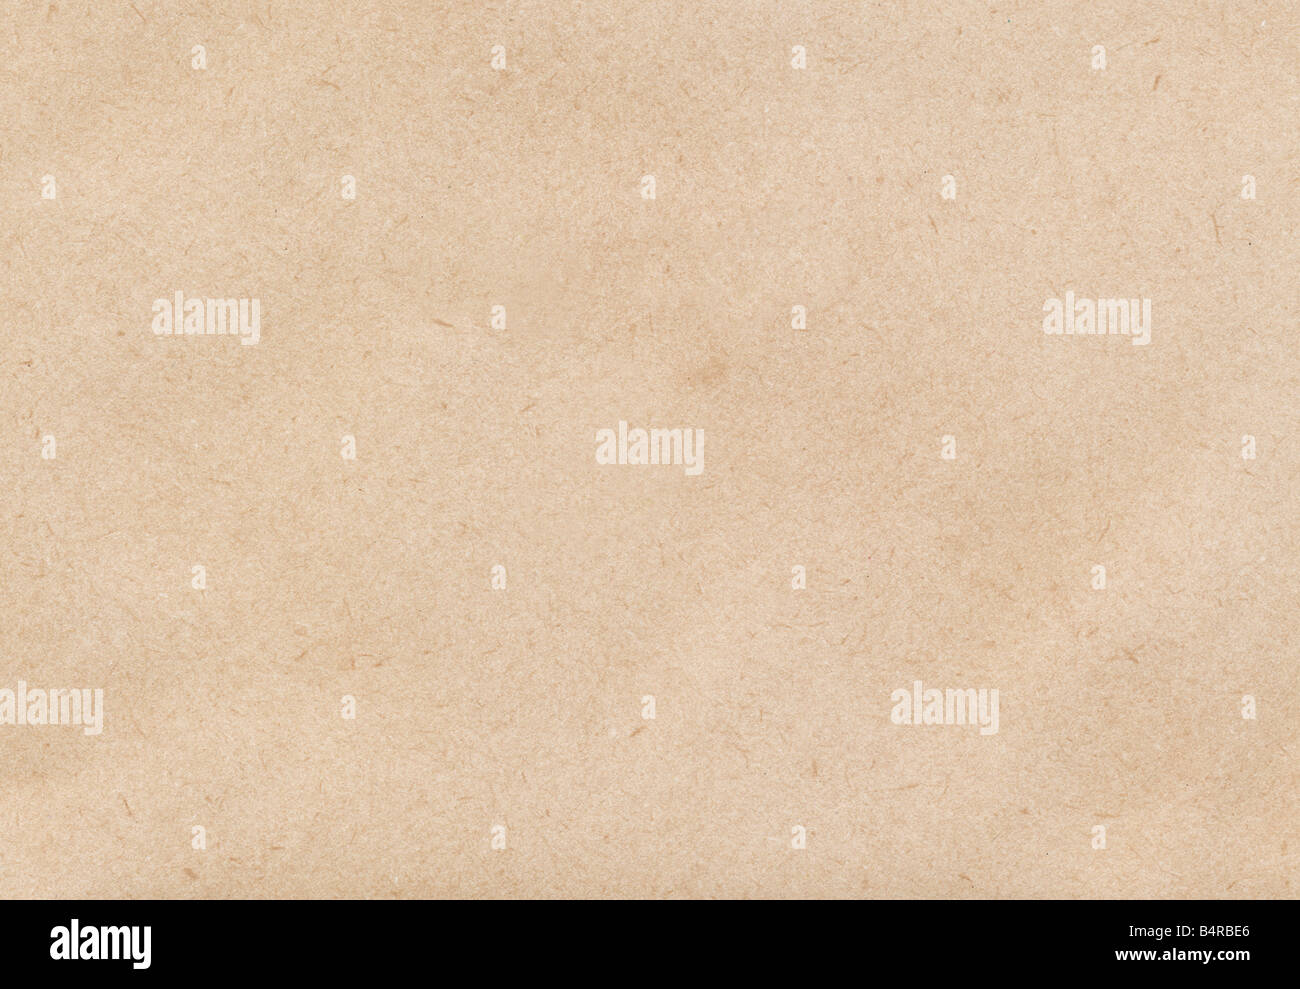 Envelope brown paper background texture - Stock Image